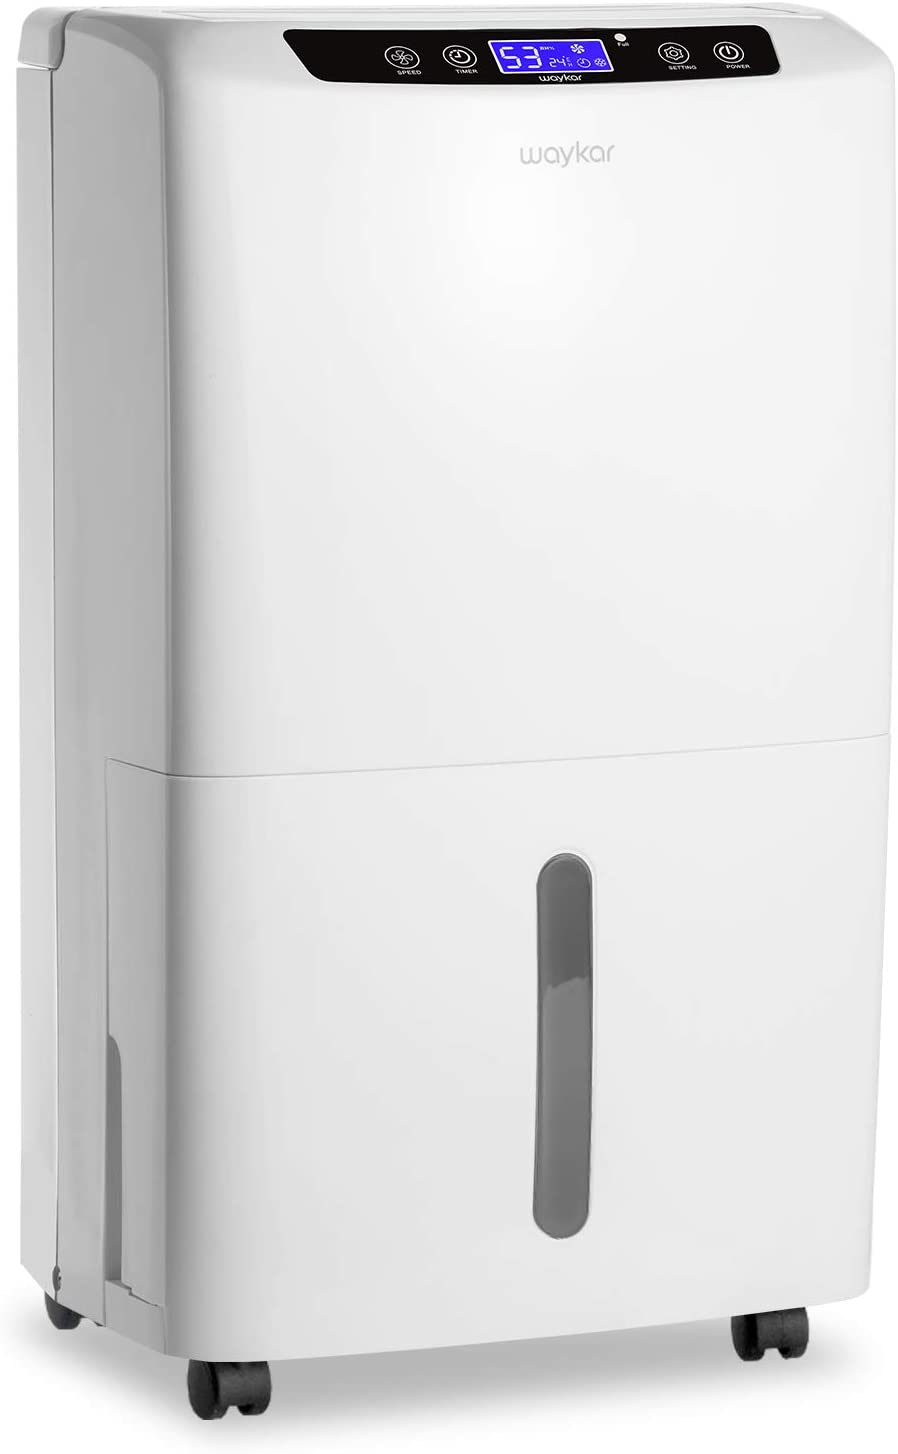 Waykar 40 Pint Dehumidifier for Home Basements Bedroom with Drain Hose and Intelligent Humidity Control, Continuously Removes 5 Gallons of Moisture Day in Spaces up to 2000 Sq. Ft.